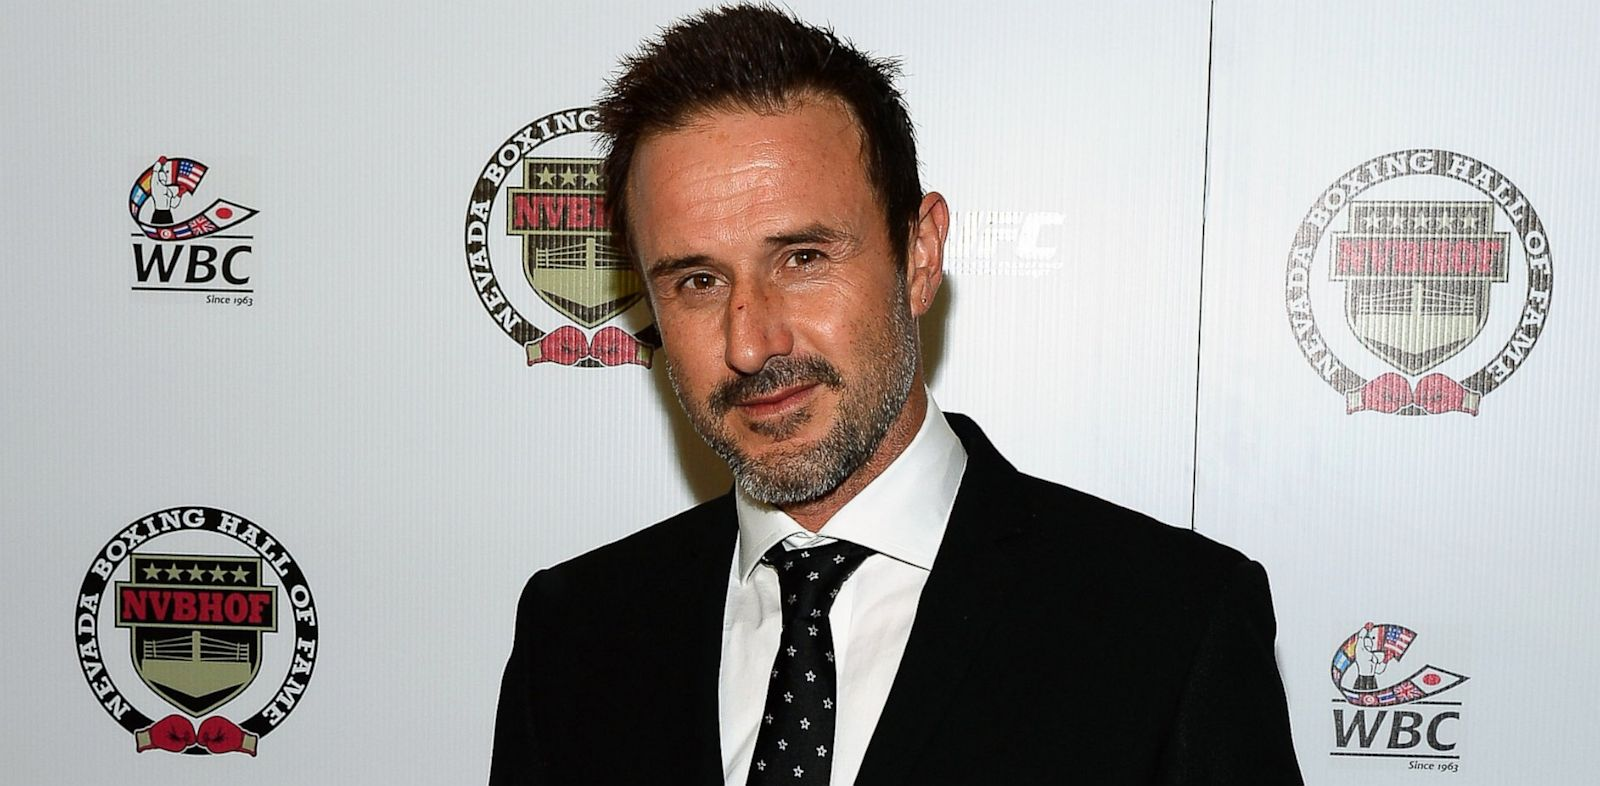 PHOTO: Actor David Arquette arrives at the Nevada Boxing Hall of Fame inaugural induction gala at the Monte Carlo Resort and Casino on August 10, 2013 in Las Vegas, Nevada.